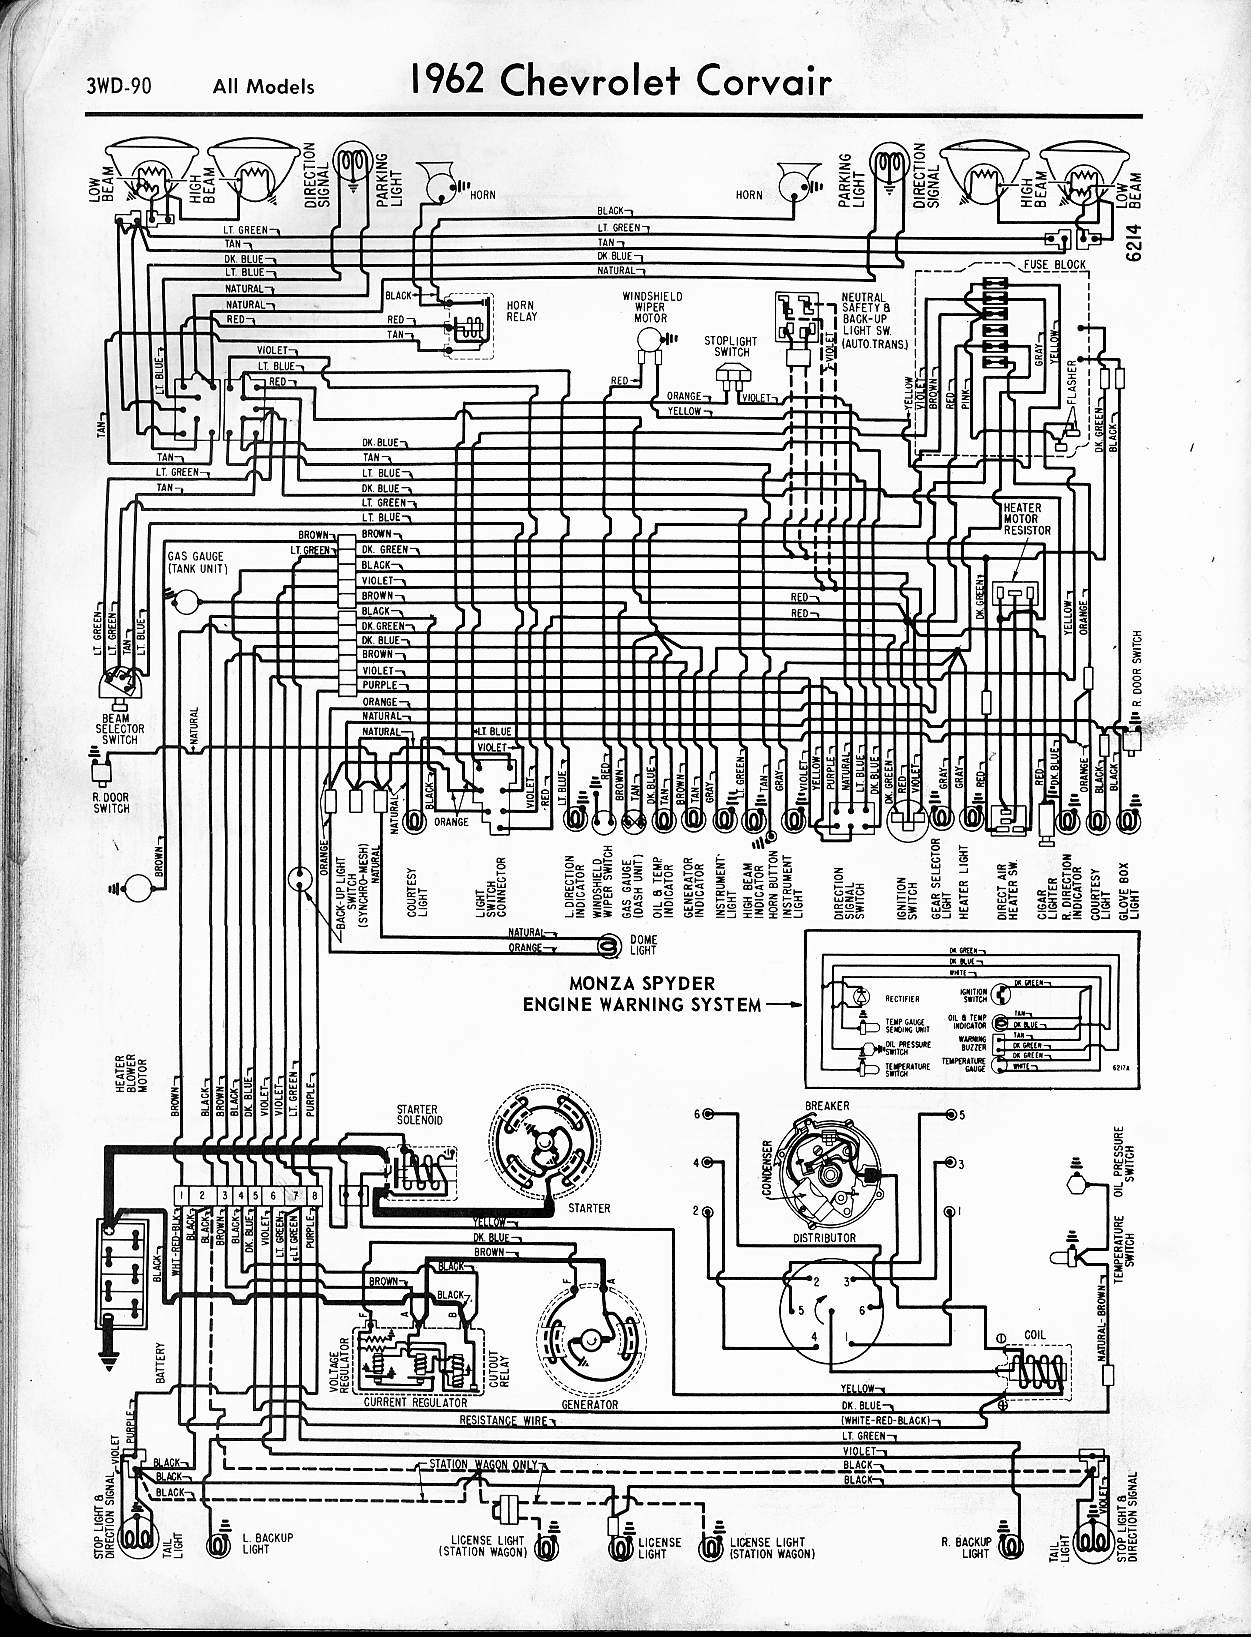 2006 impala headlight wiring diagram area lighting research chevy bcm get free image about